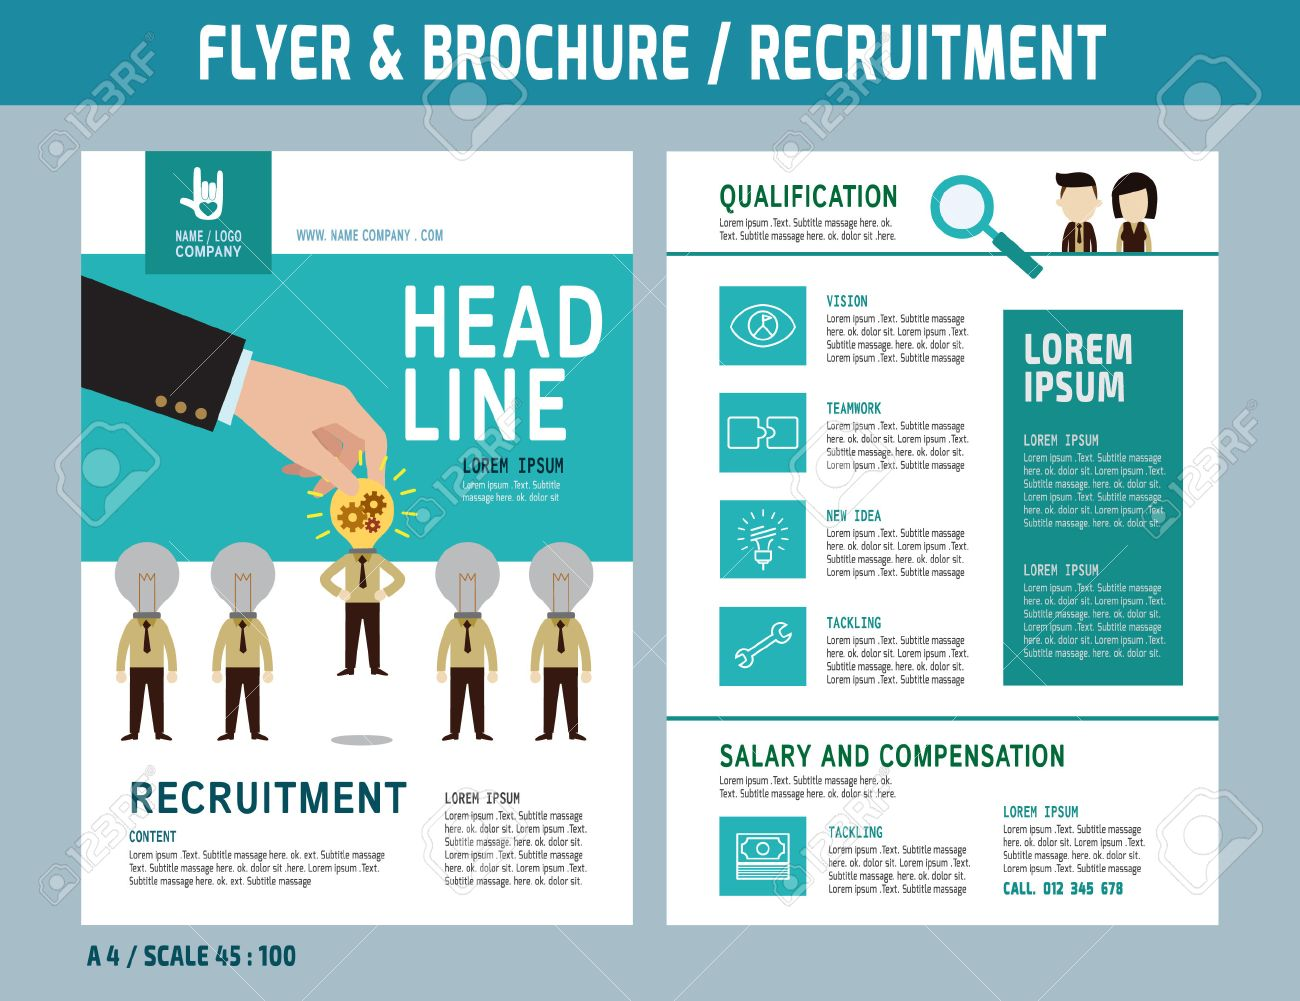 recruitment flyer design vector template in a4 size brochure